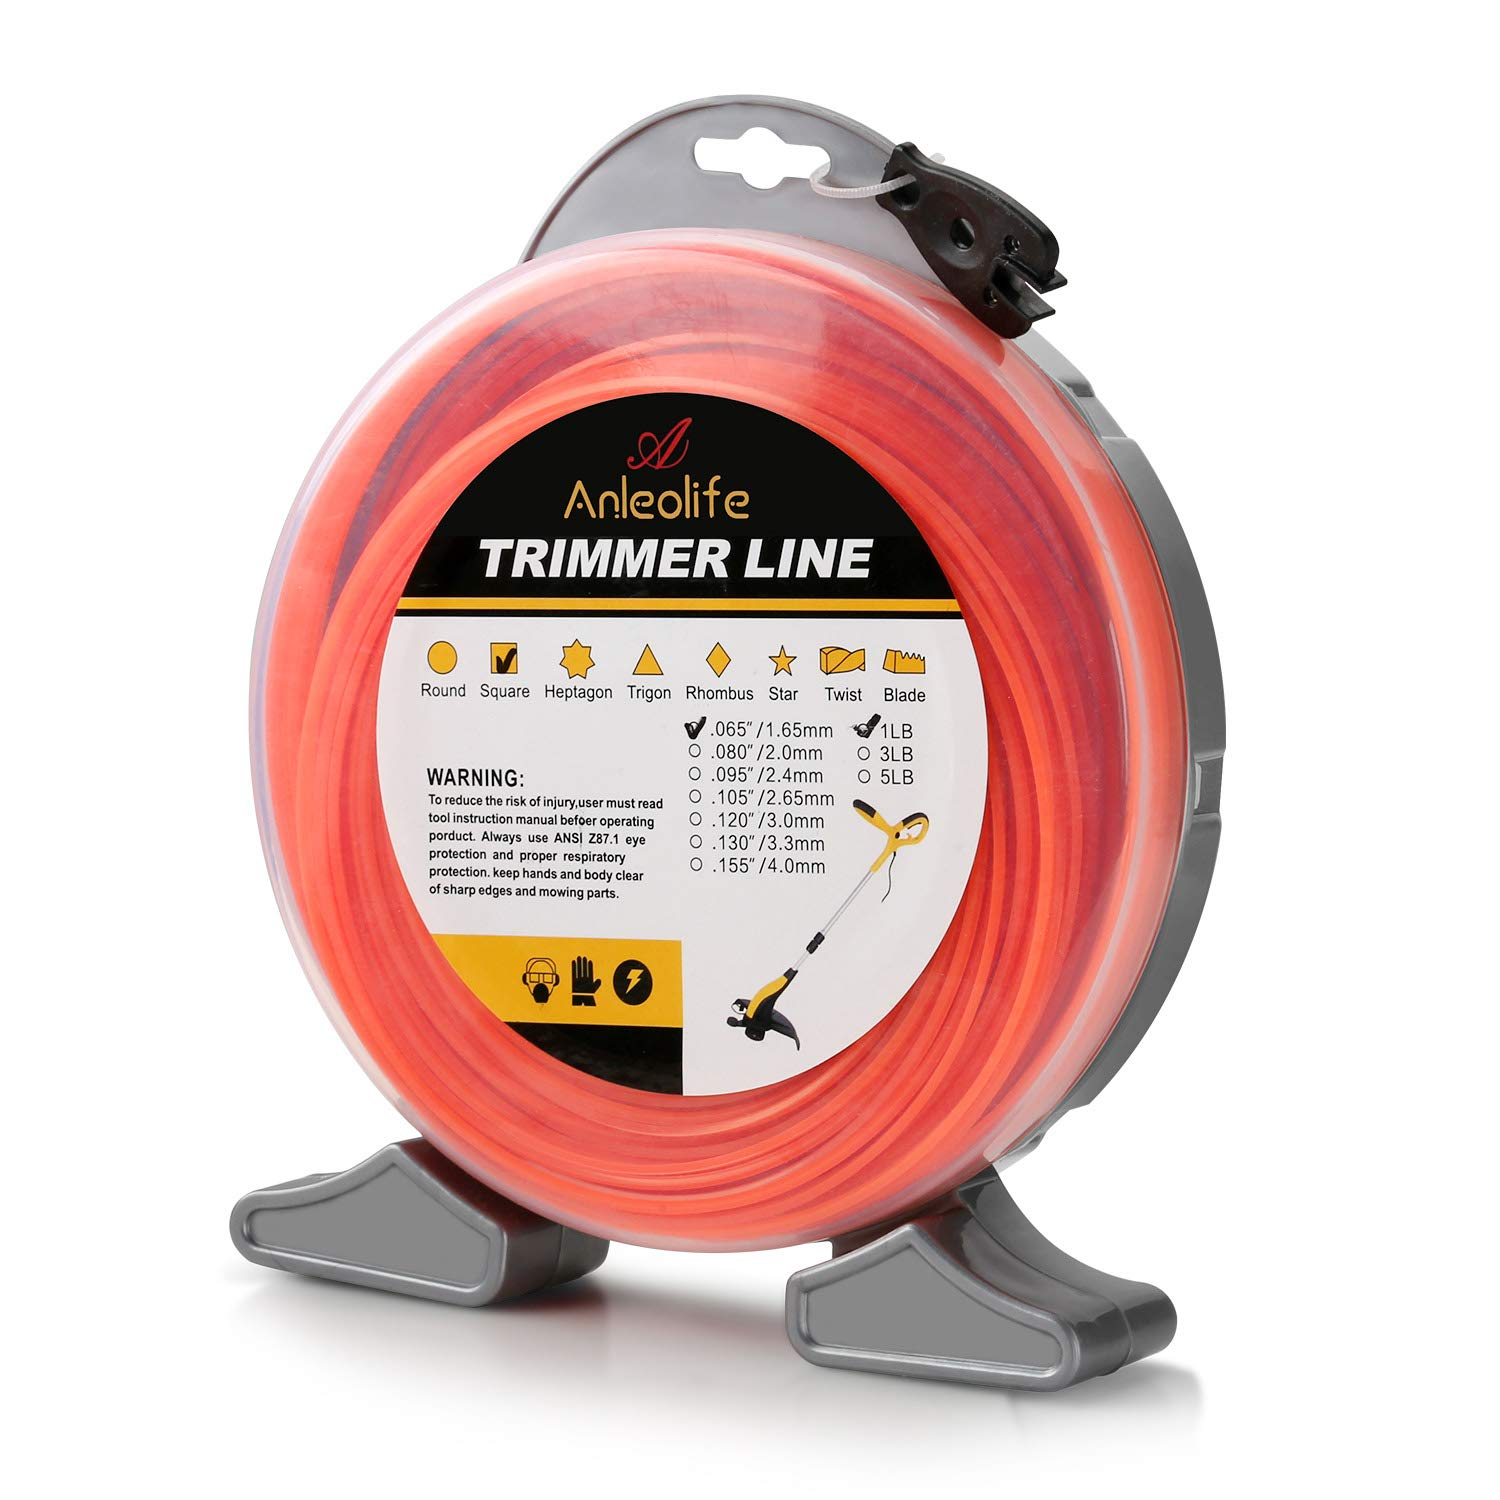 Anleolife 1-Pound Commercial Square .065-Inch-by-960-ft String Trimmer Line Donut,with Bonus Line Cutter, Orange by Anleolife